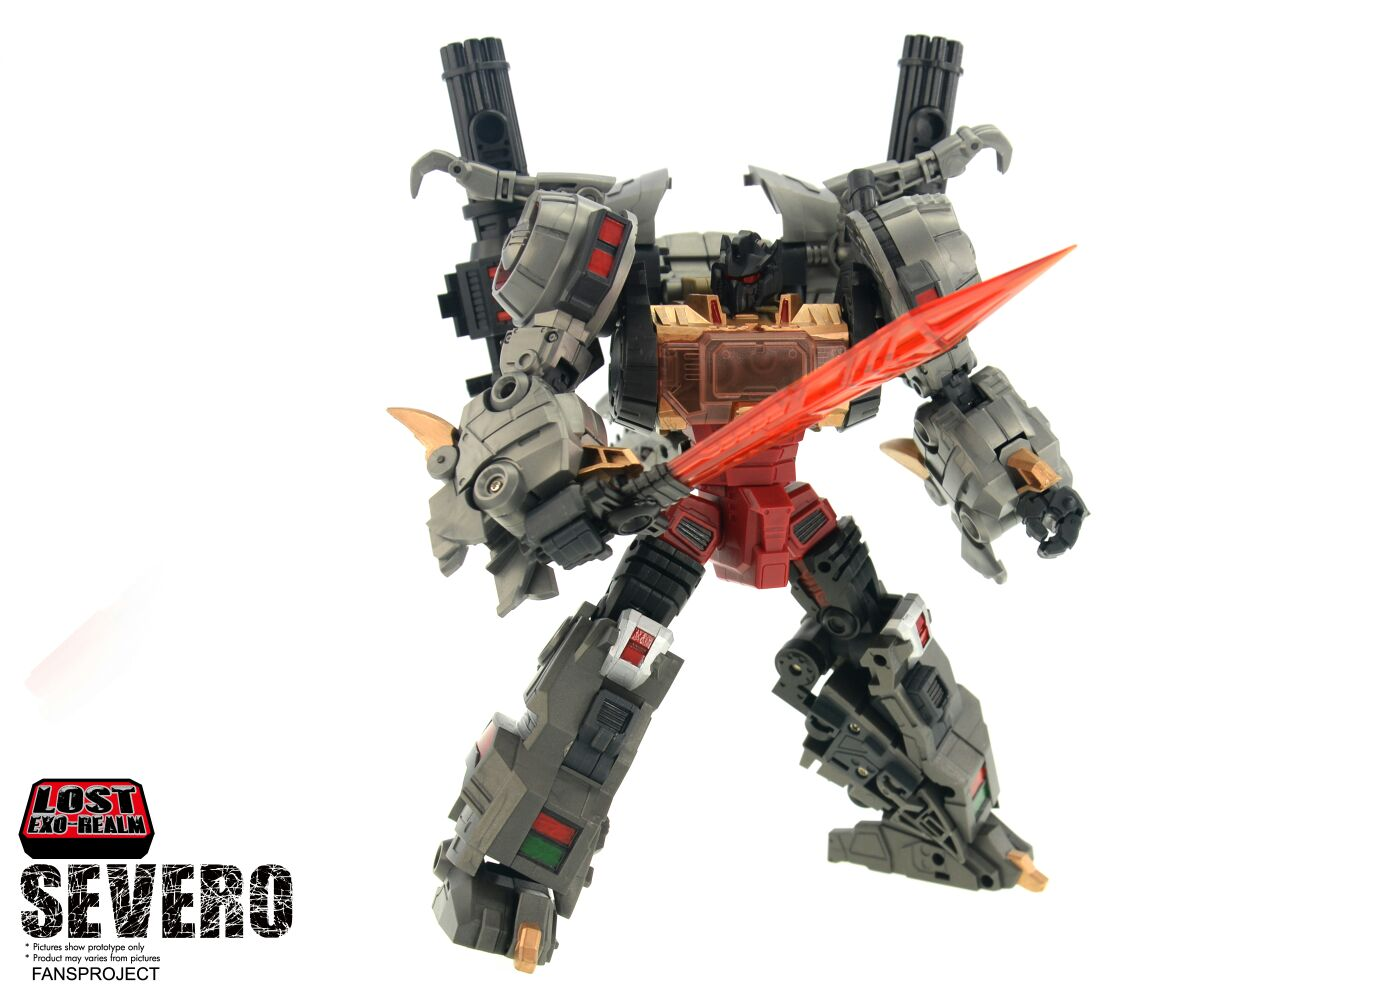 [FansProject] Produit Tiers - Jouets LER (Lost Exo Realm) - aka Dinobots - Page 2 Severo-2